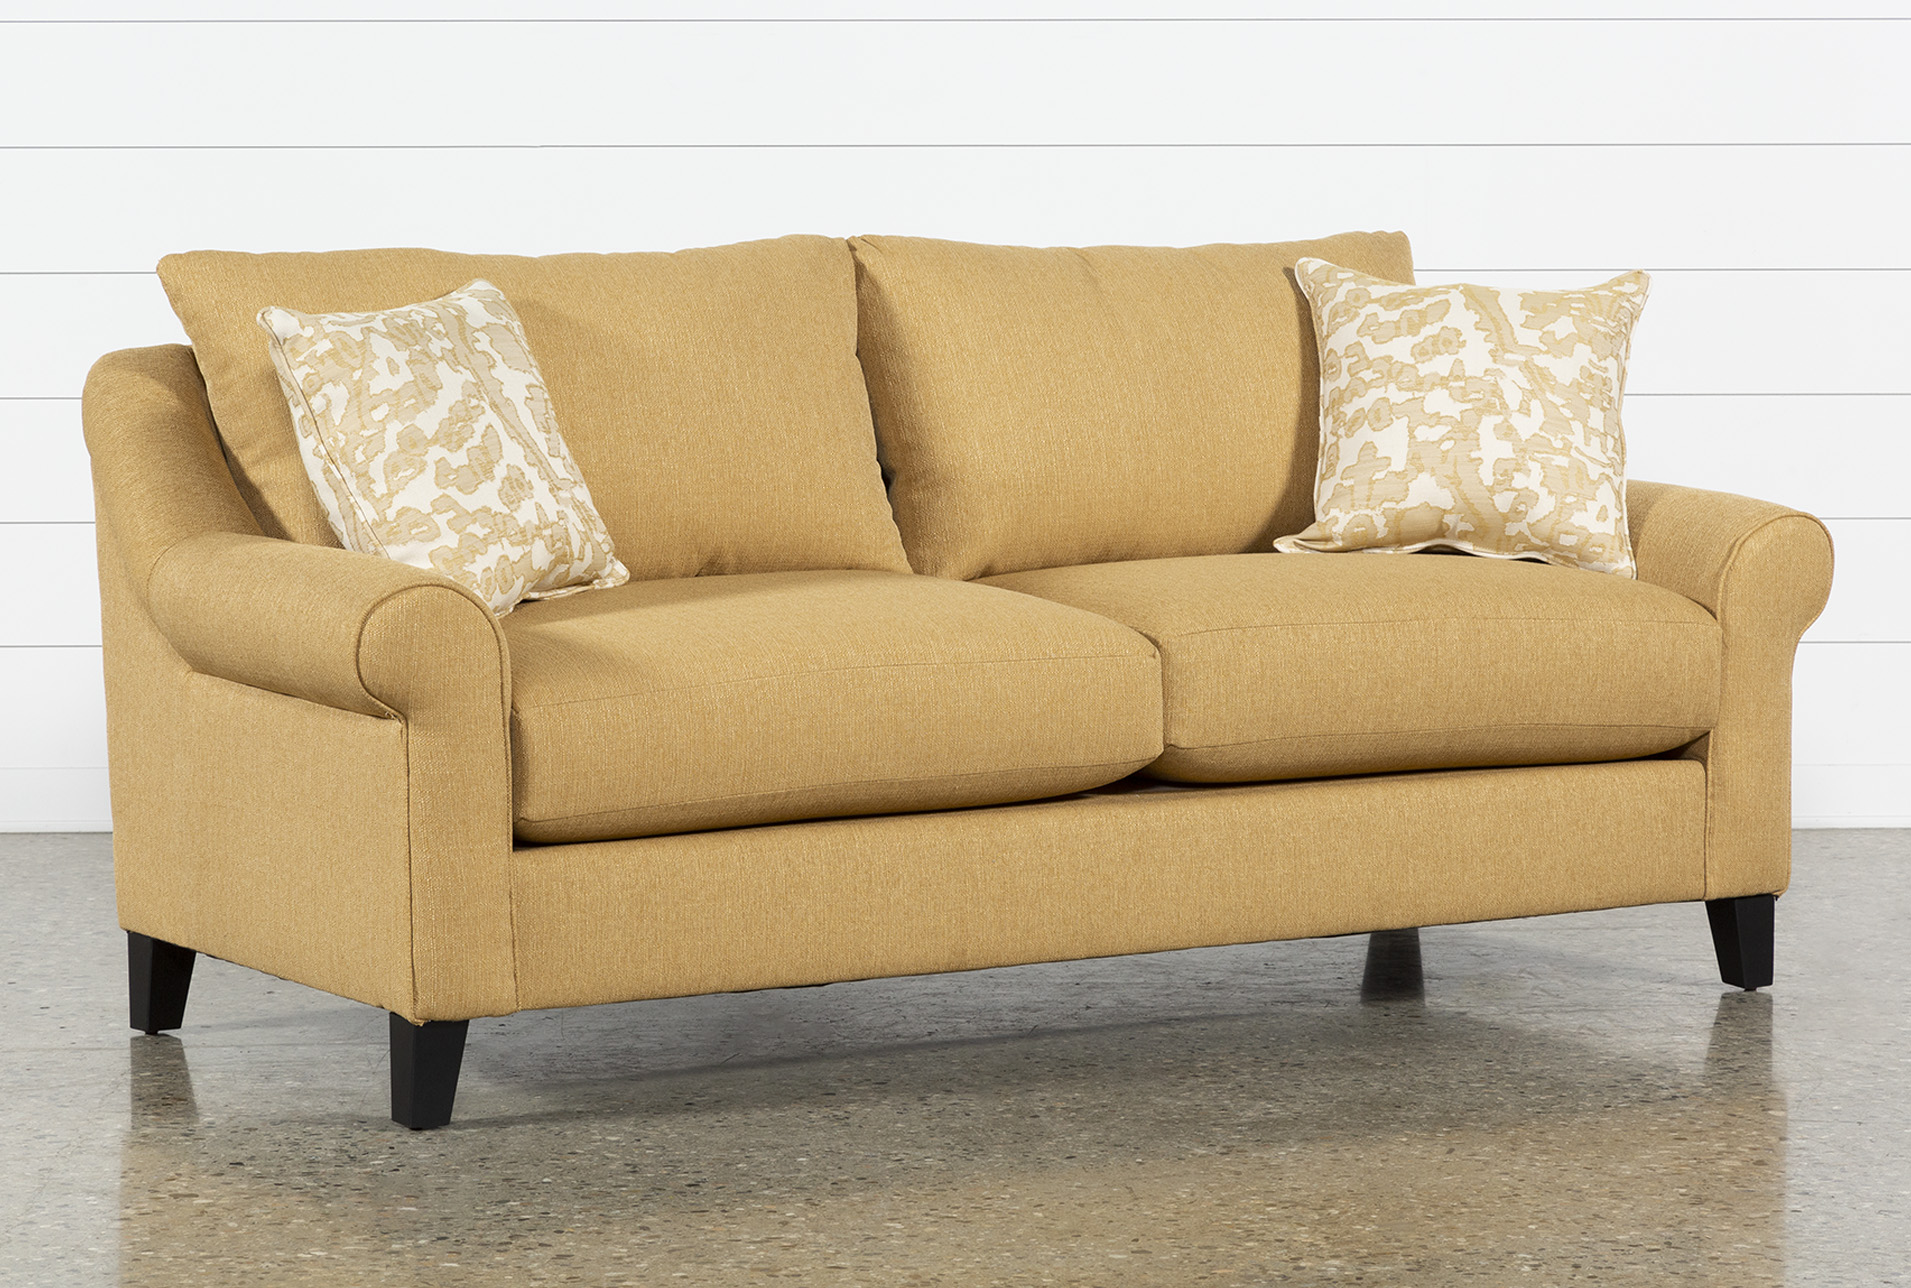 Landry II Sofa (Qty: 1) Has Been Successfully Added To Your Cart.